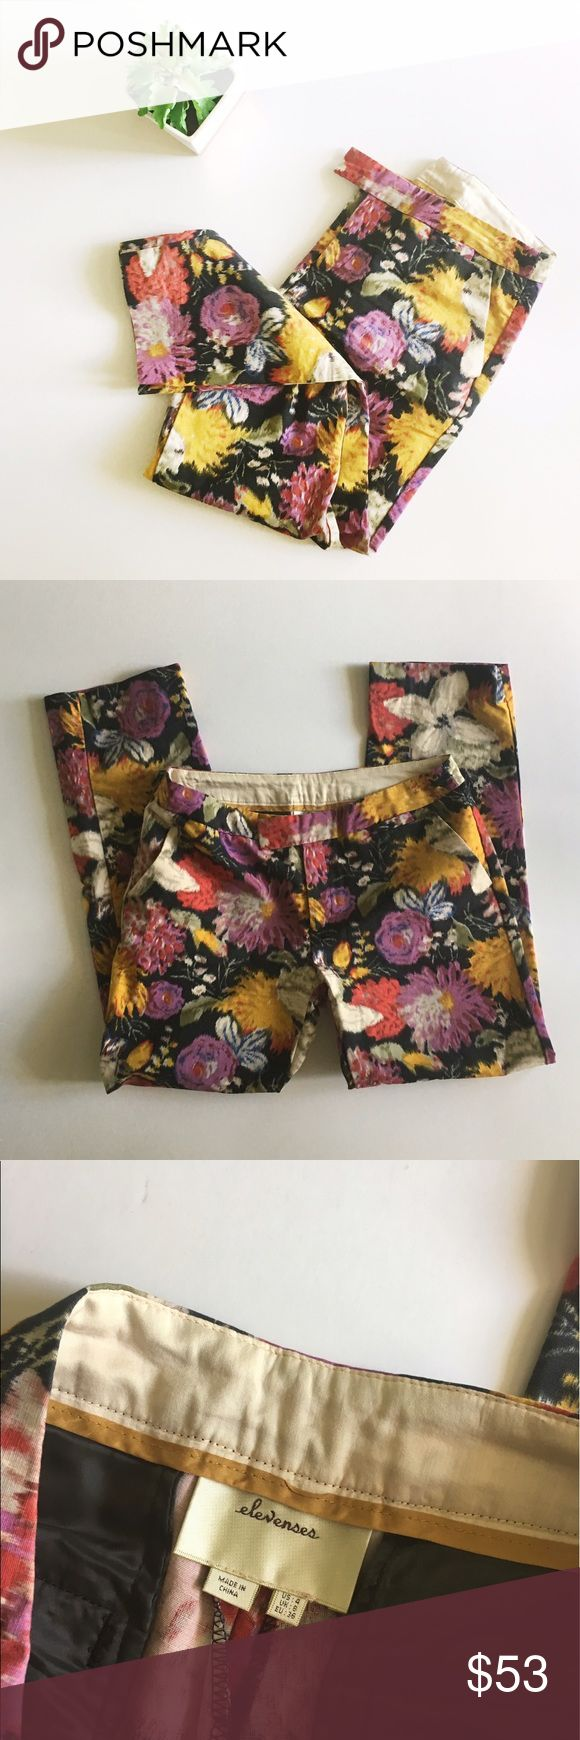 Anthropologie Elevenses Floral Ankle Pants Anthropologie brand Elevenses Floral pants size 4. 100% cotton, has little stretch. No stains or holes, make an offer! Anthropologie Pants Ankle & Cropped